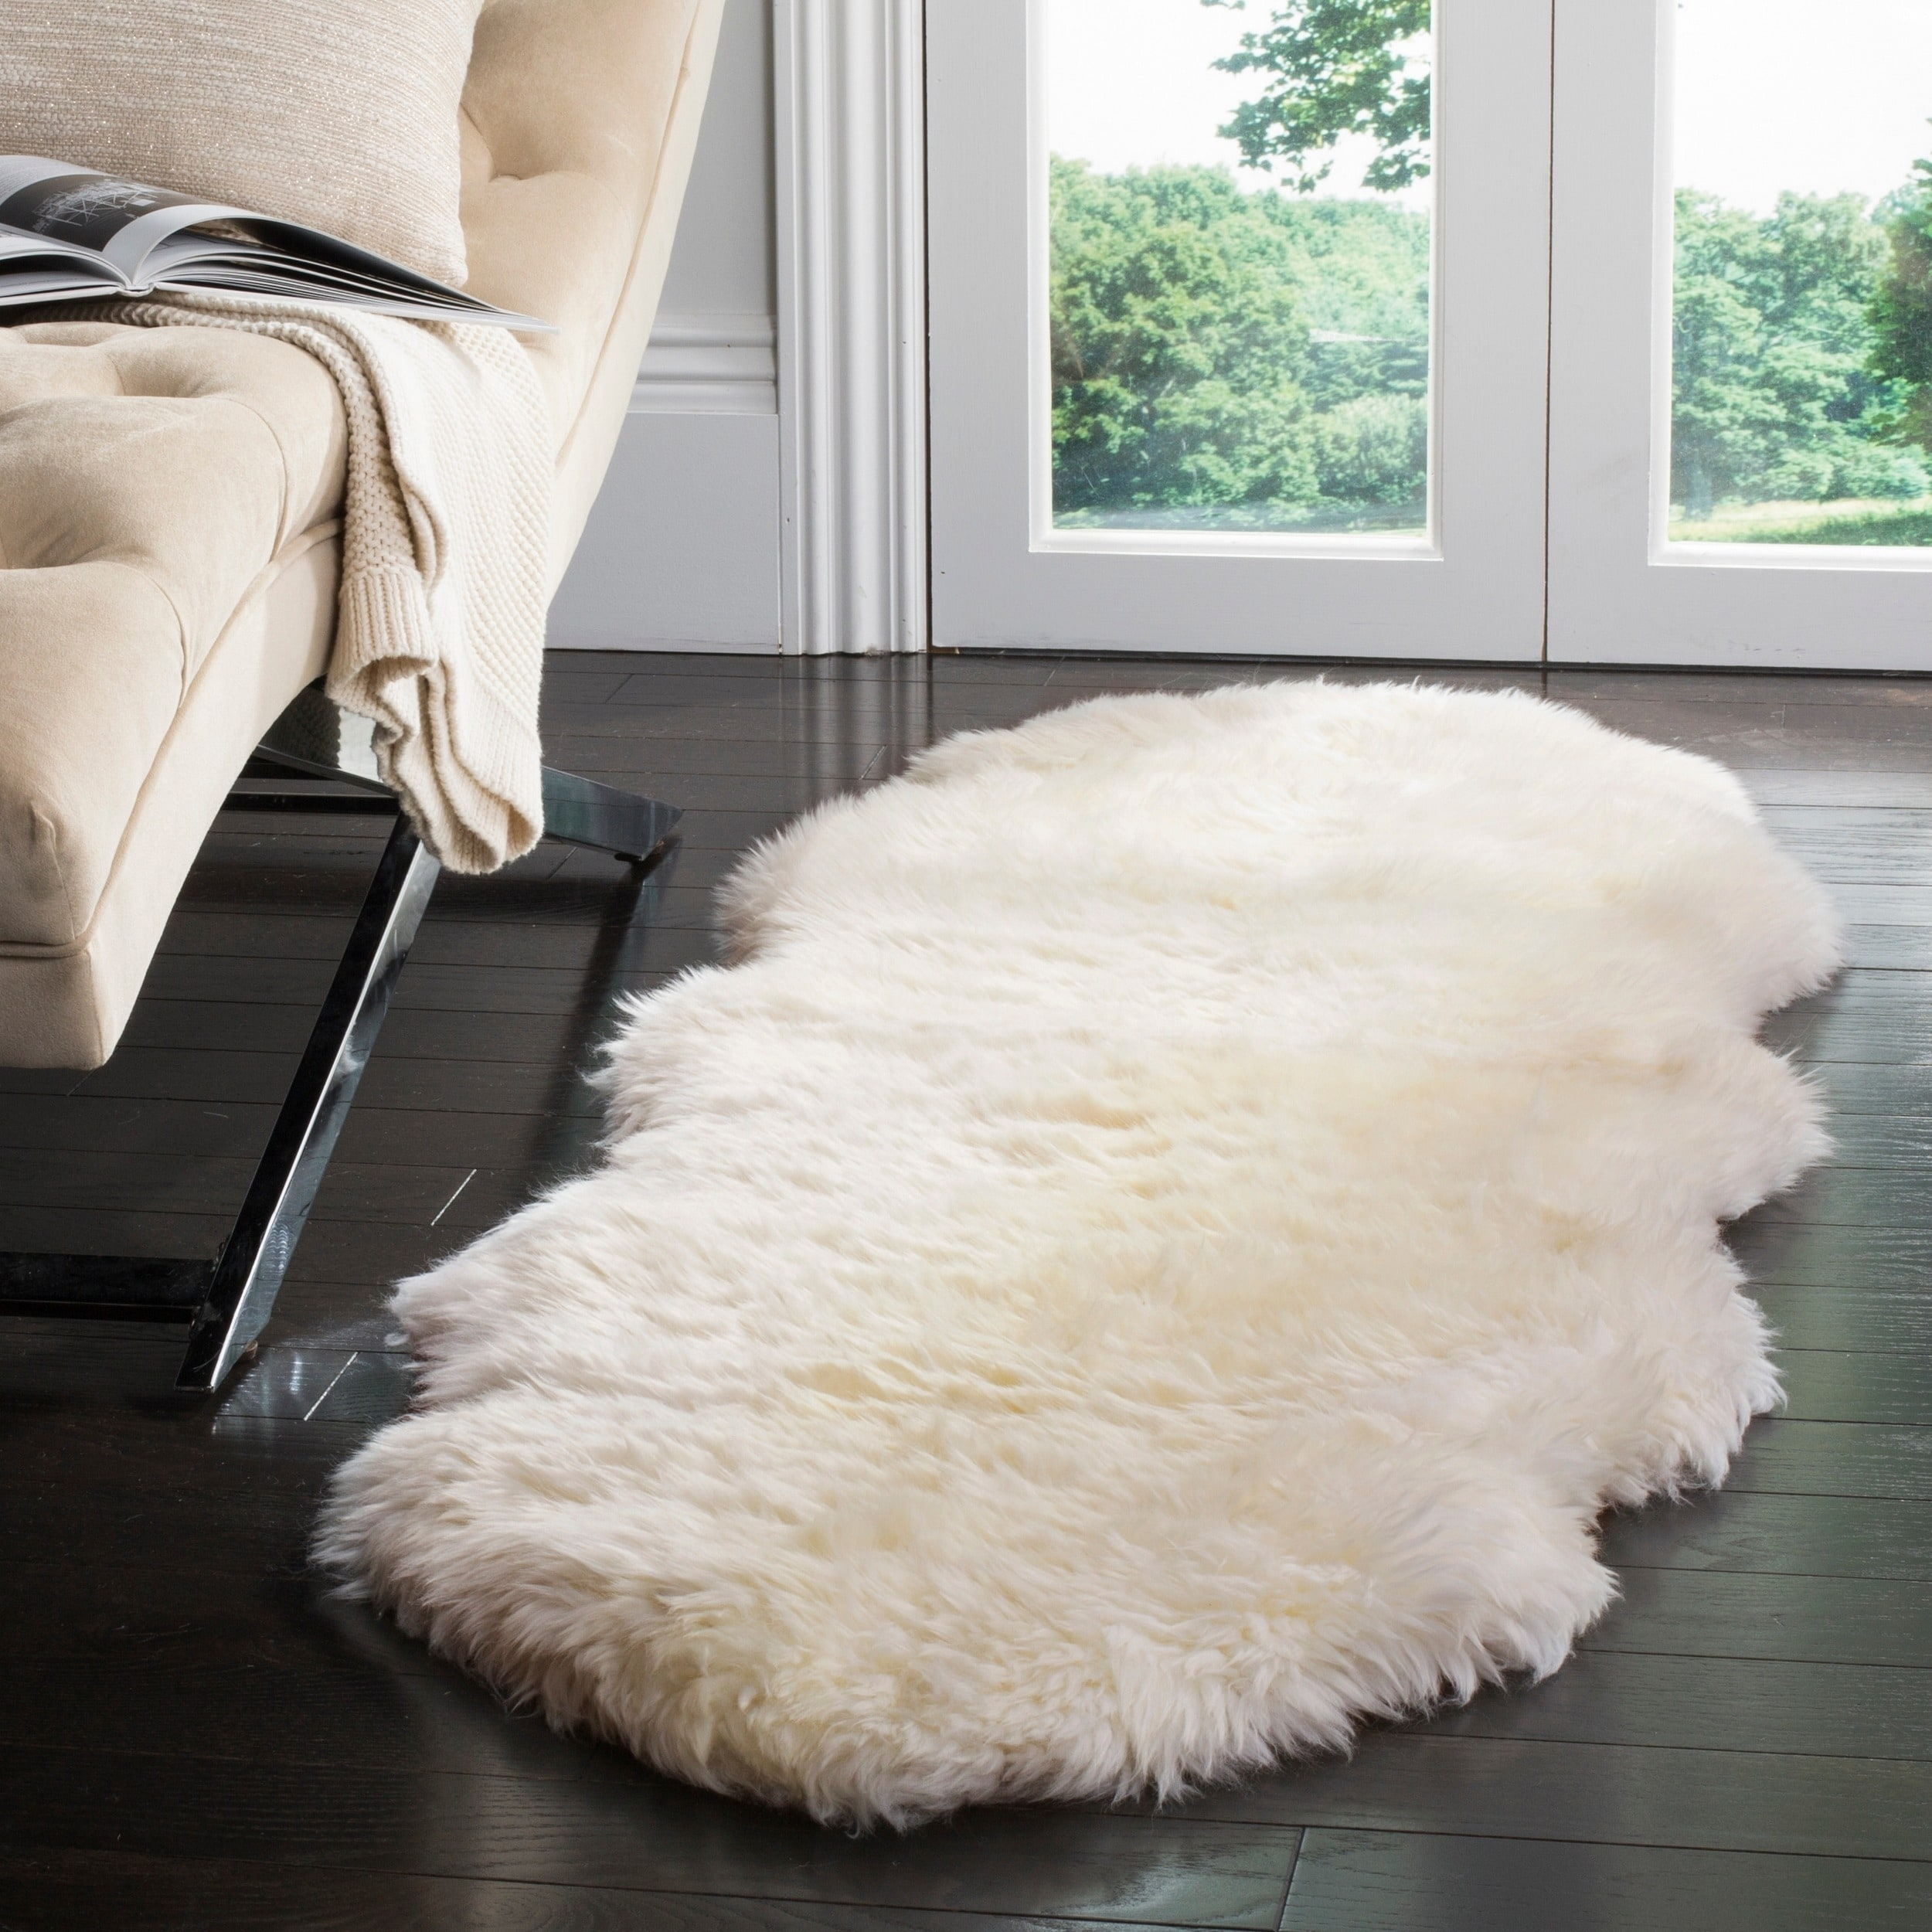 Safavieh Hand Woven Sheepskin Pelt White Rug 2 X 6 Free Shipping Today 15691795